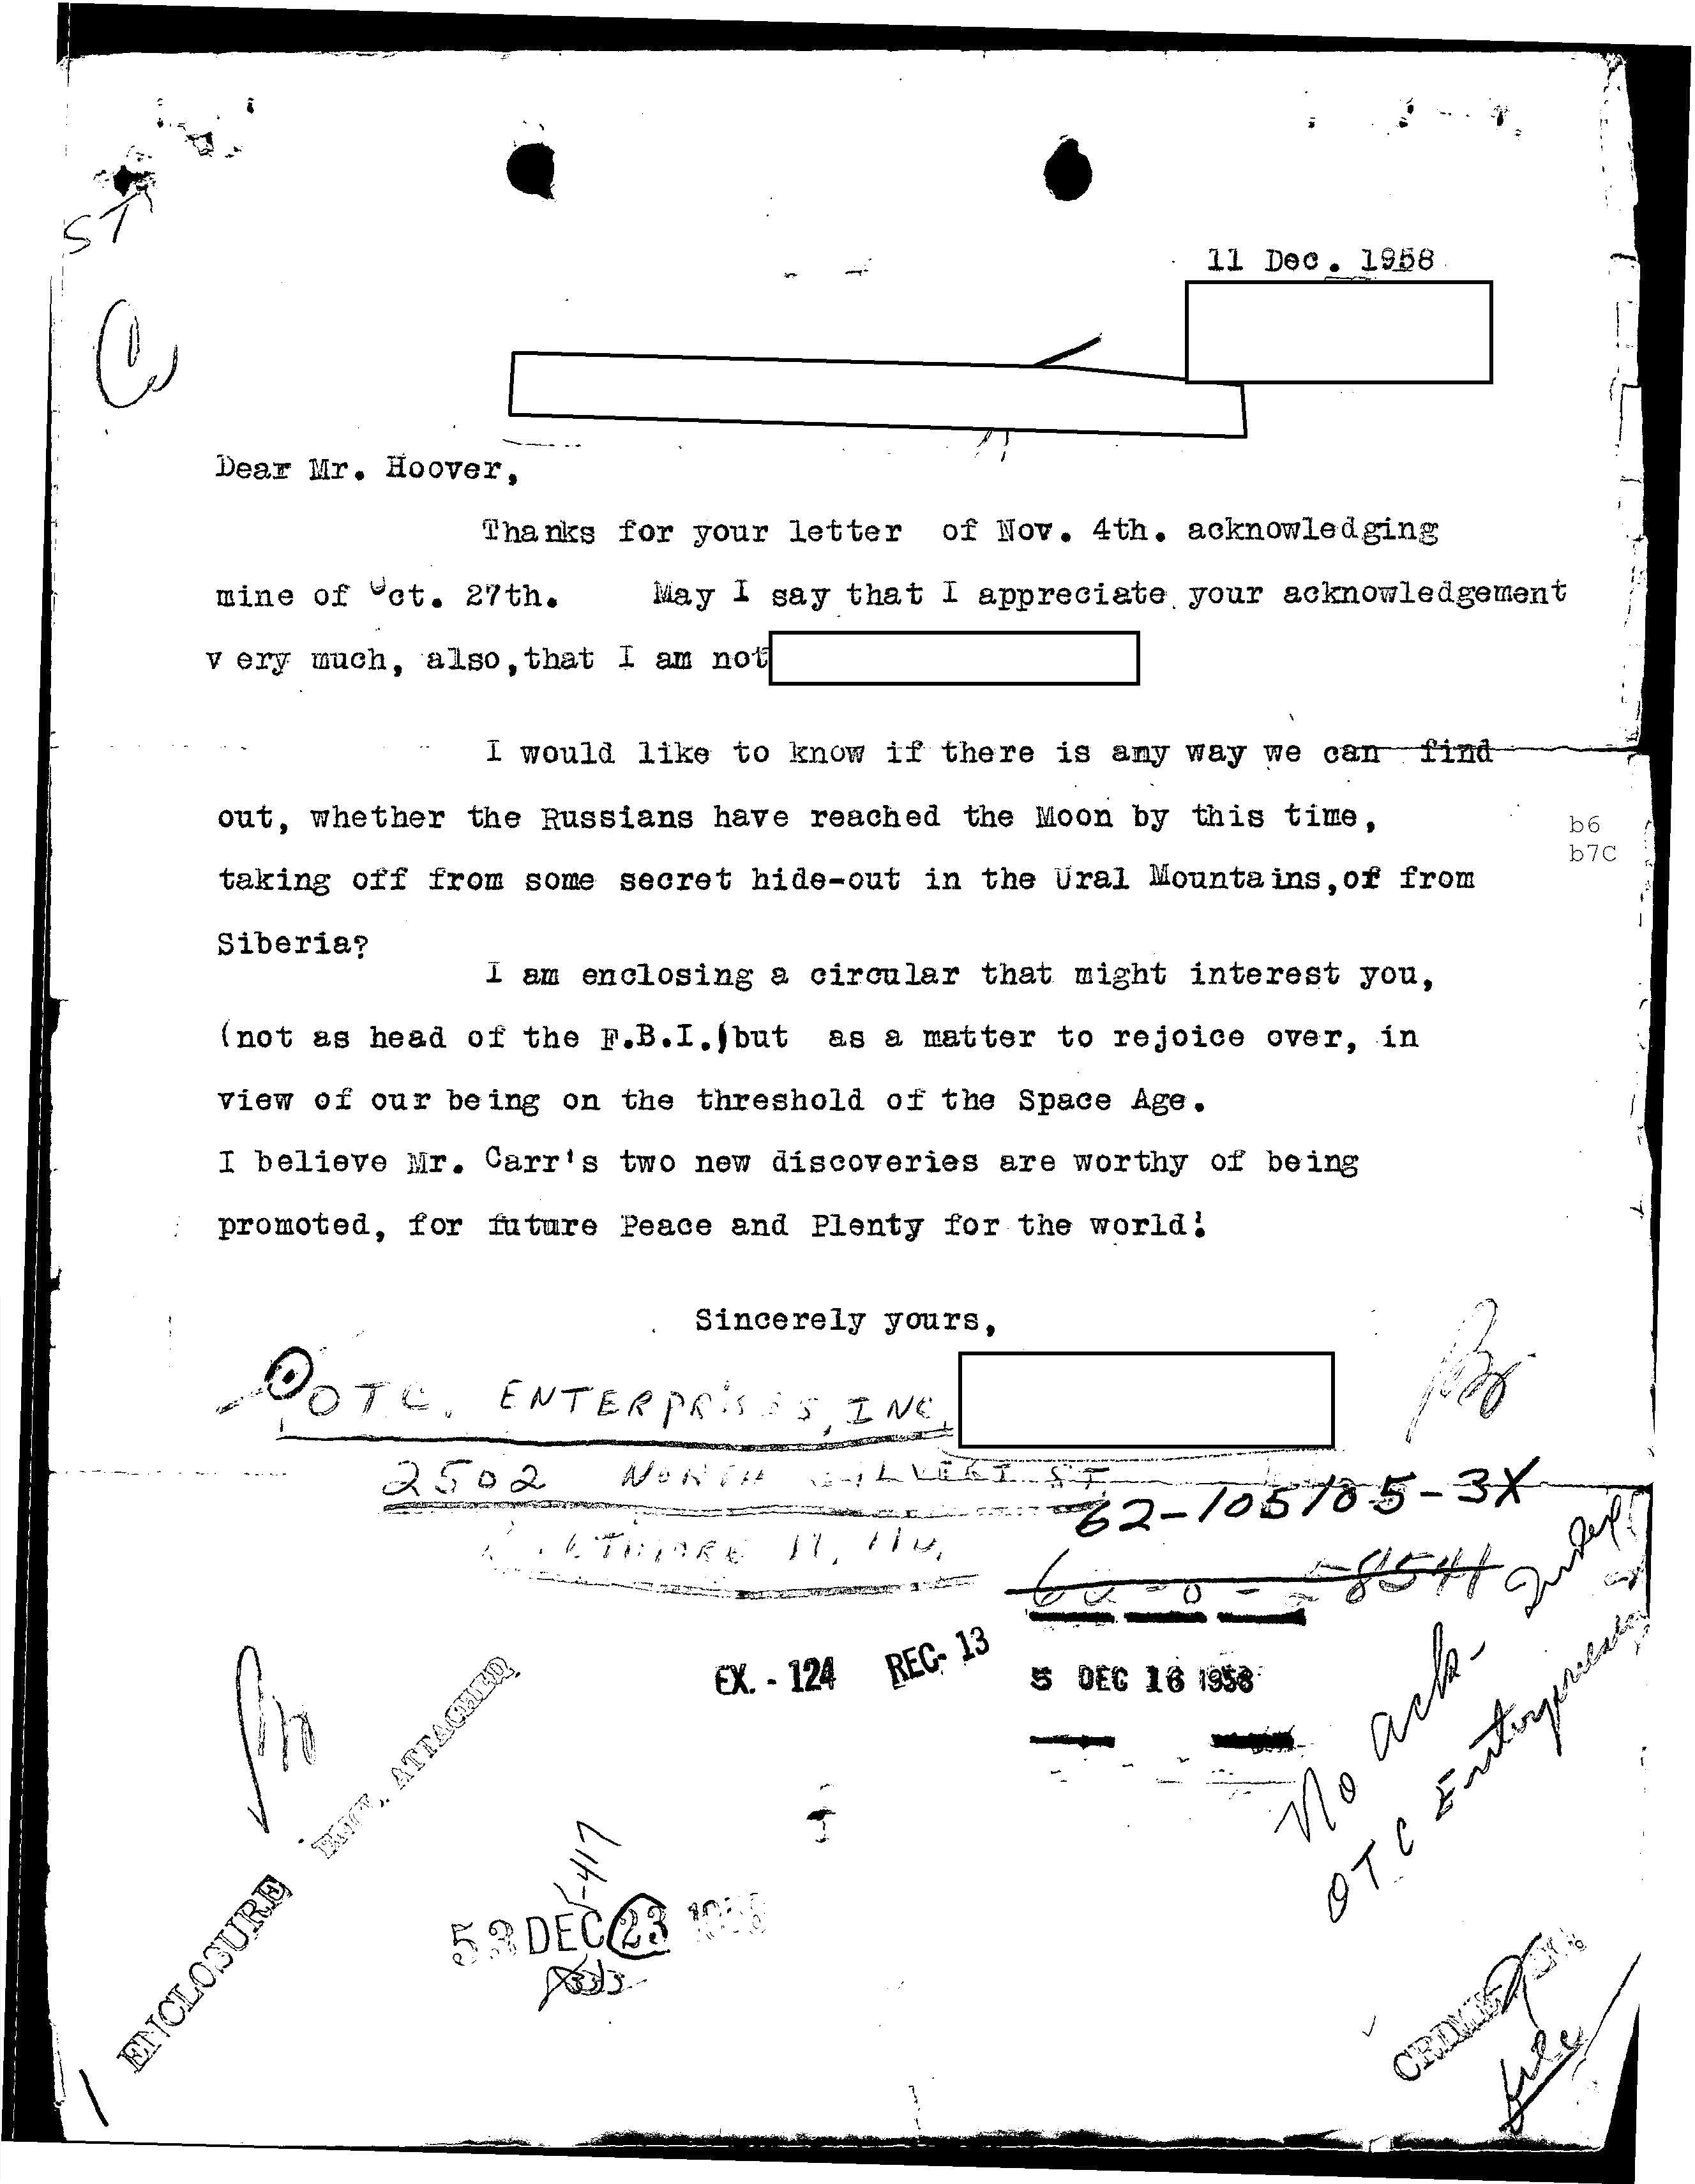 Letter to Hoover